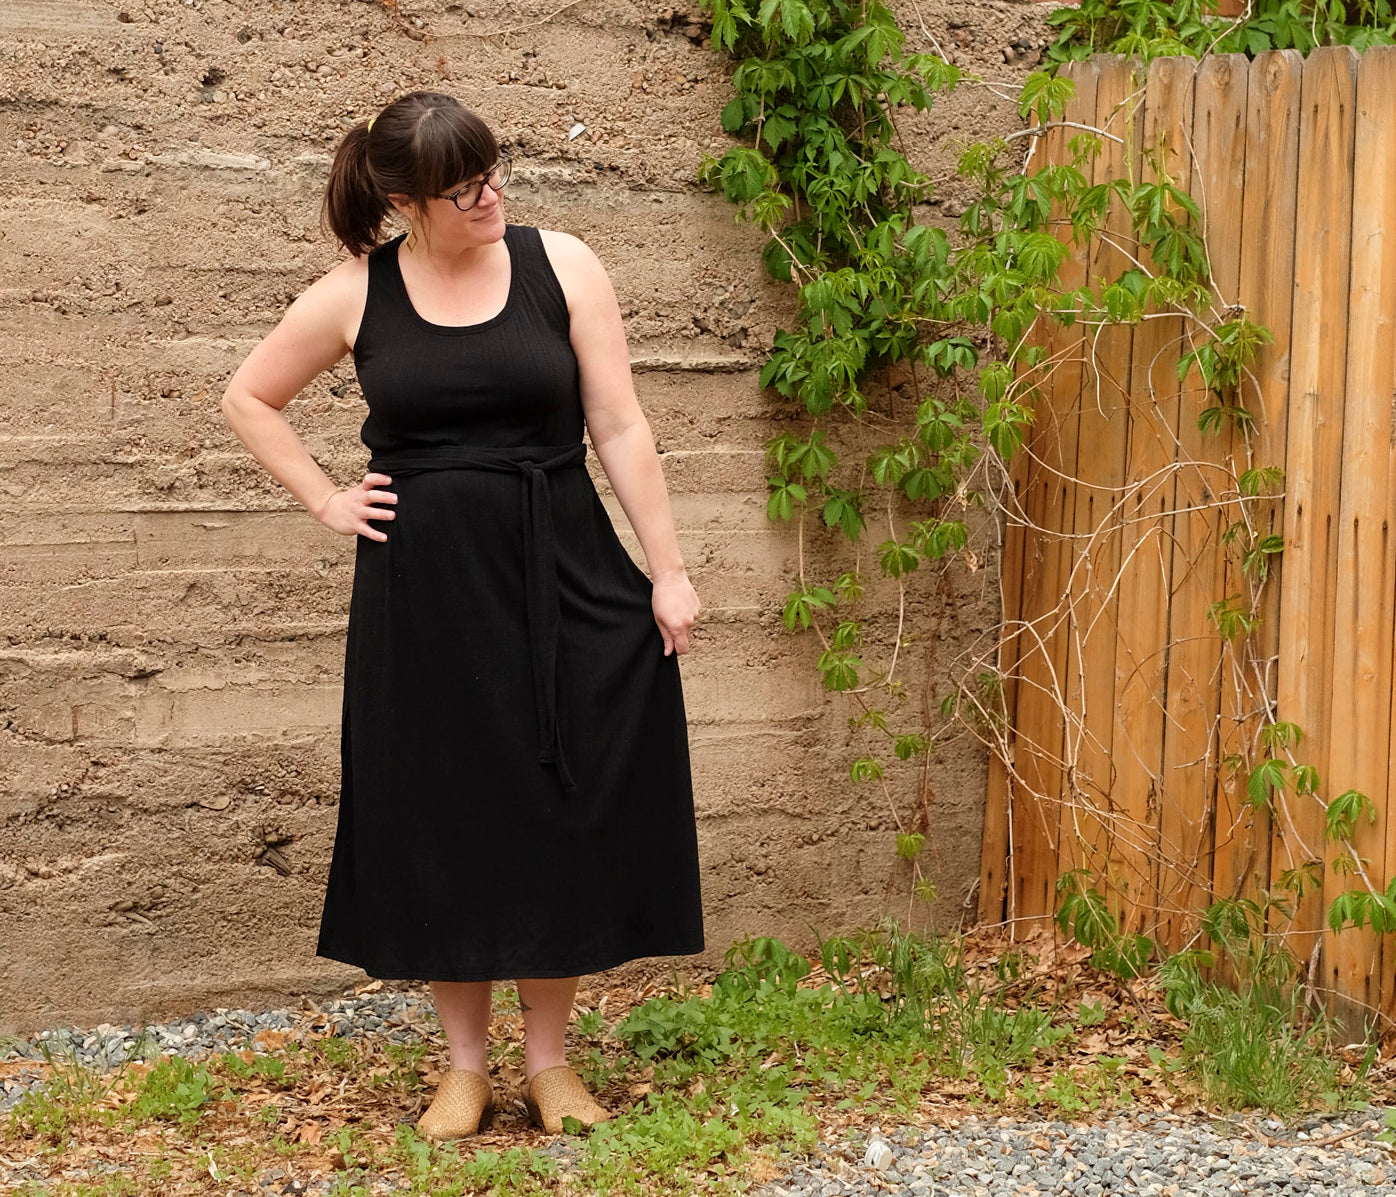 Amanda's standing in front of brick wall in handsewn maxi dress